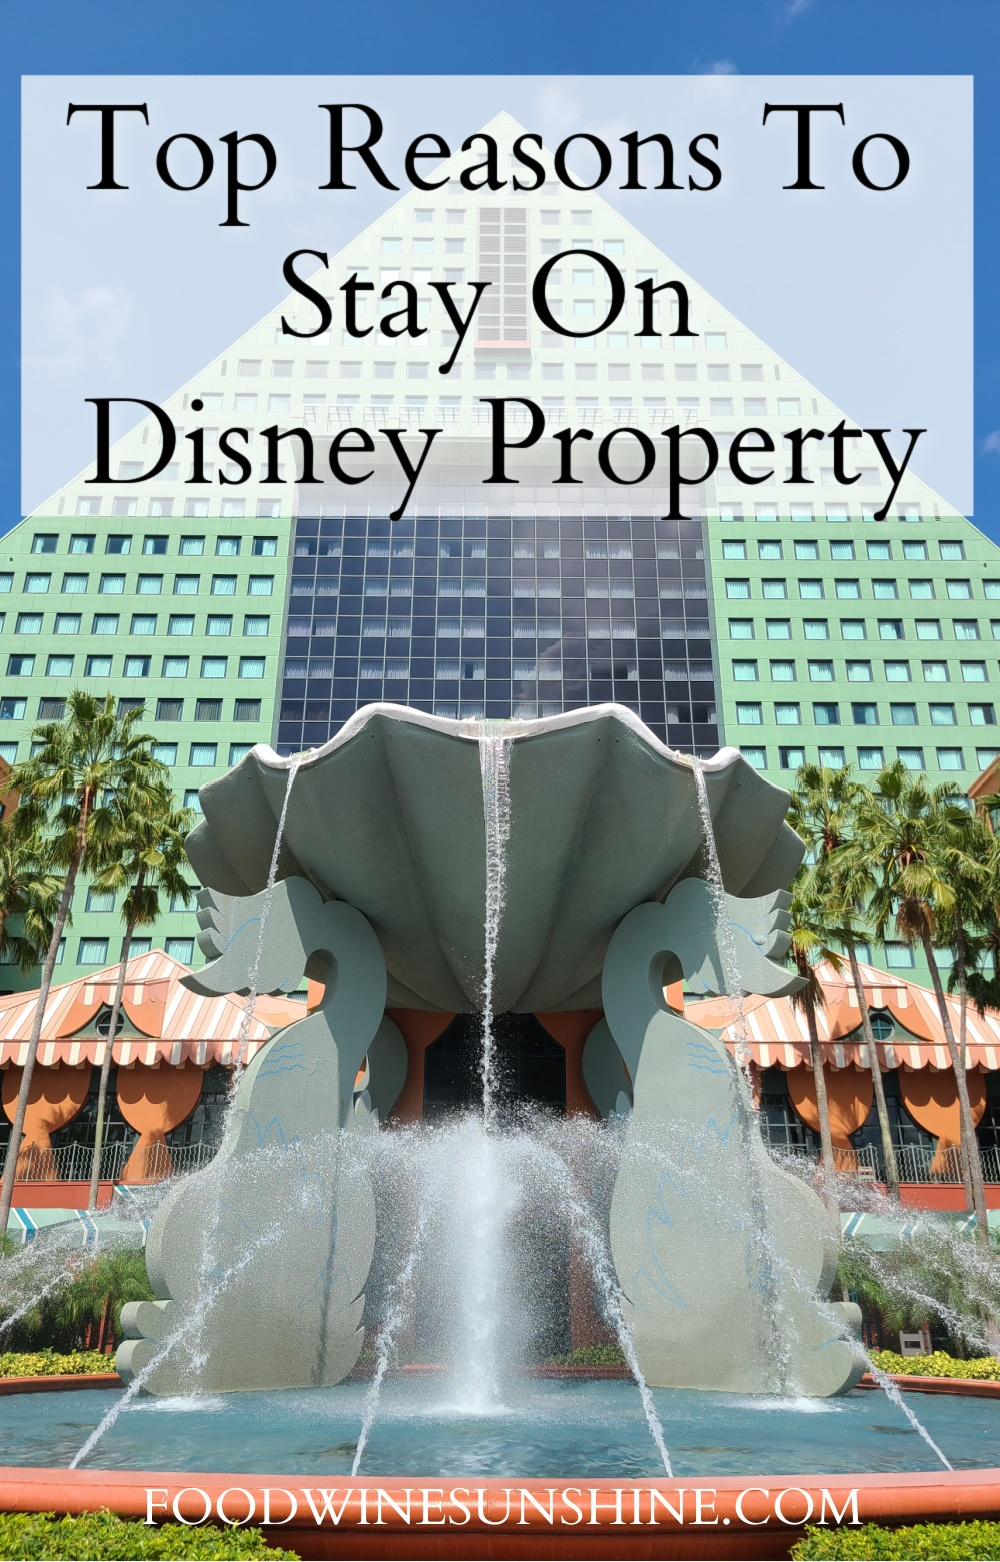 Top Reasons To Stay On Disney Property